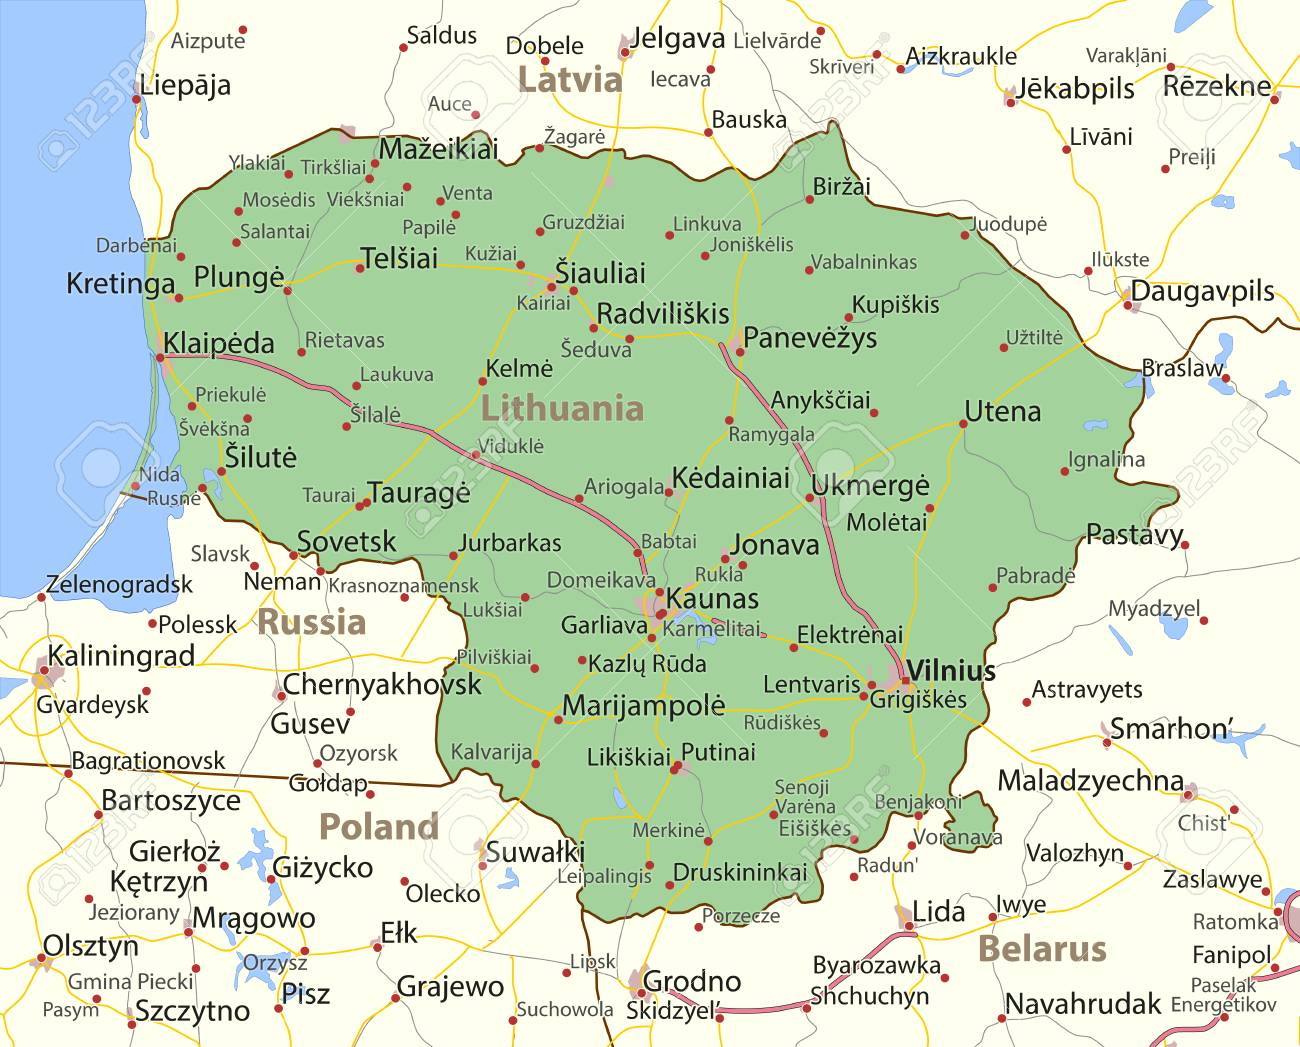 Map of Lithuania. Shows country borders, urban areas, place names..